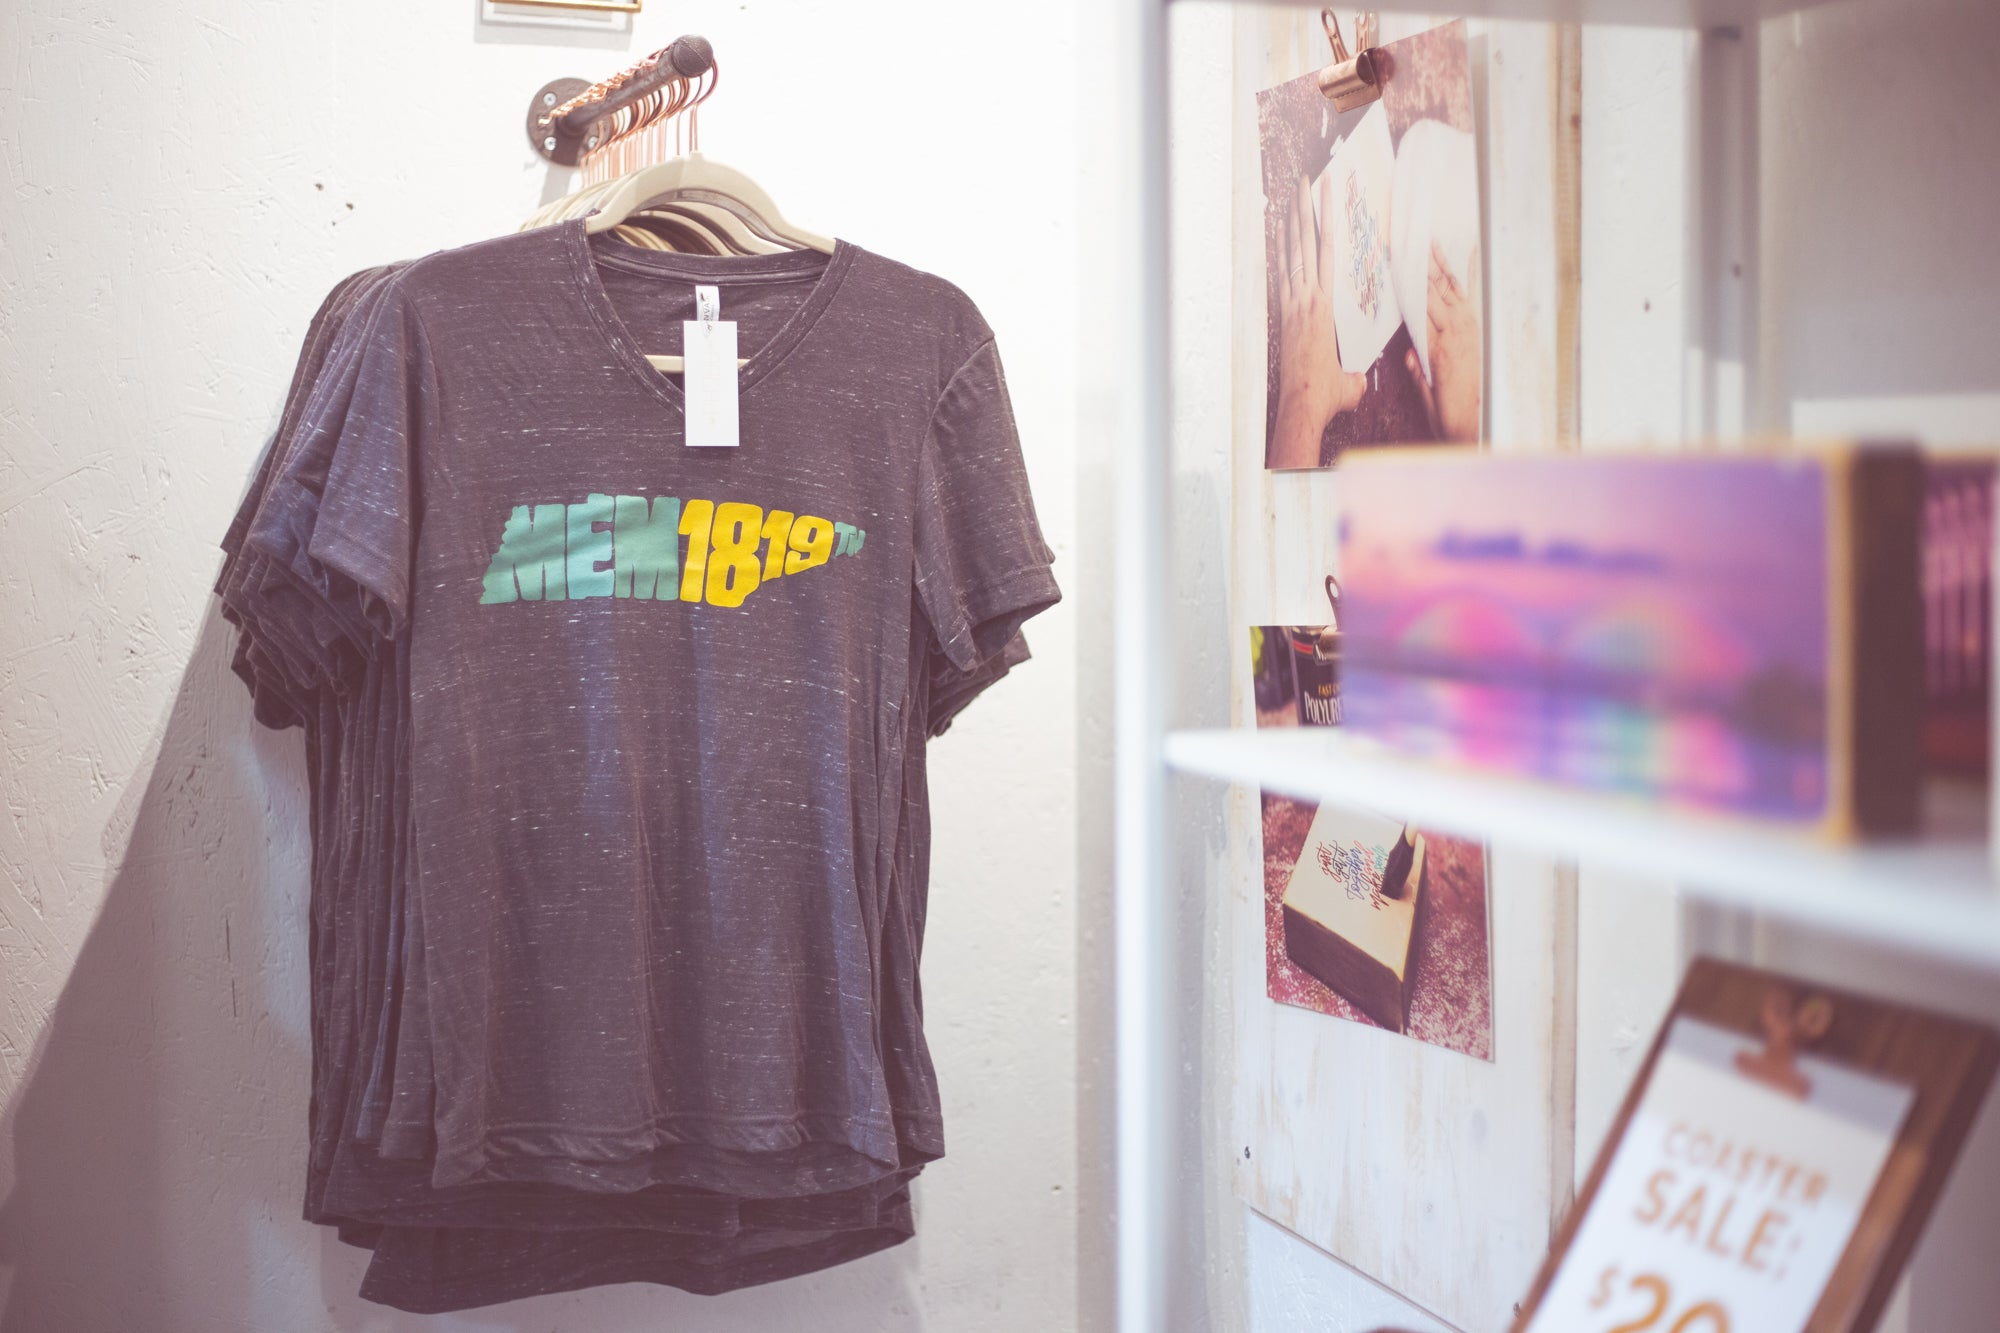 MEM1819 gray v-neck t-shirt by ARCHd at Painted Tree Marketplace Memphis, TN